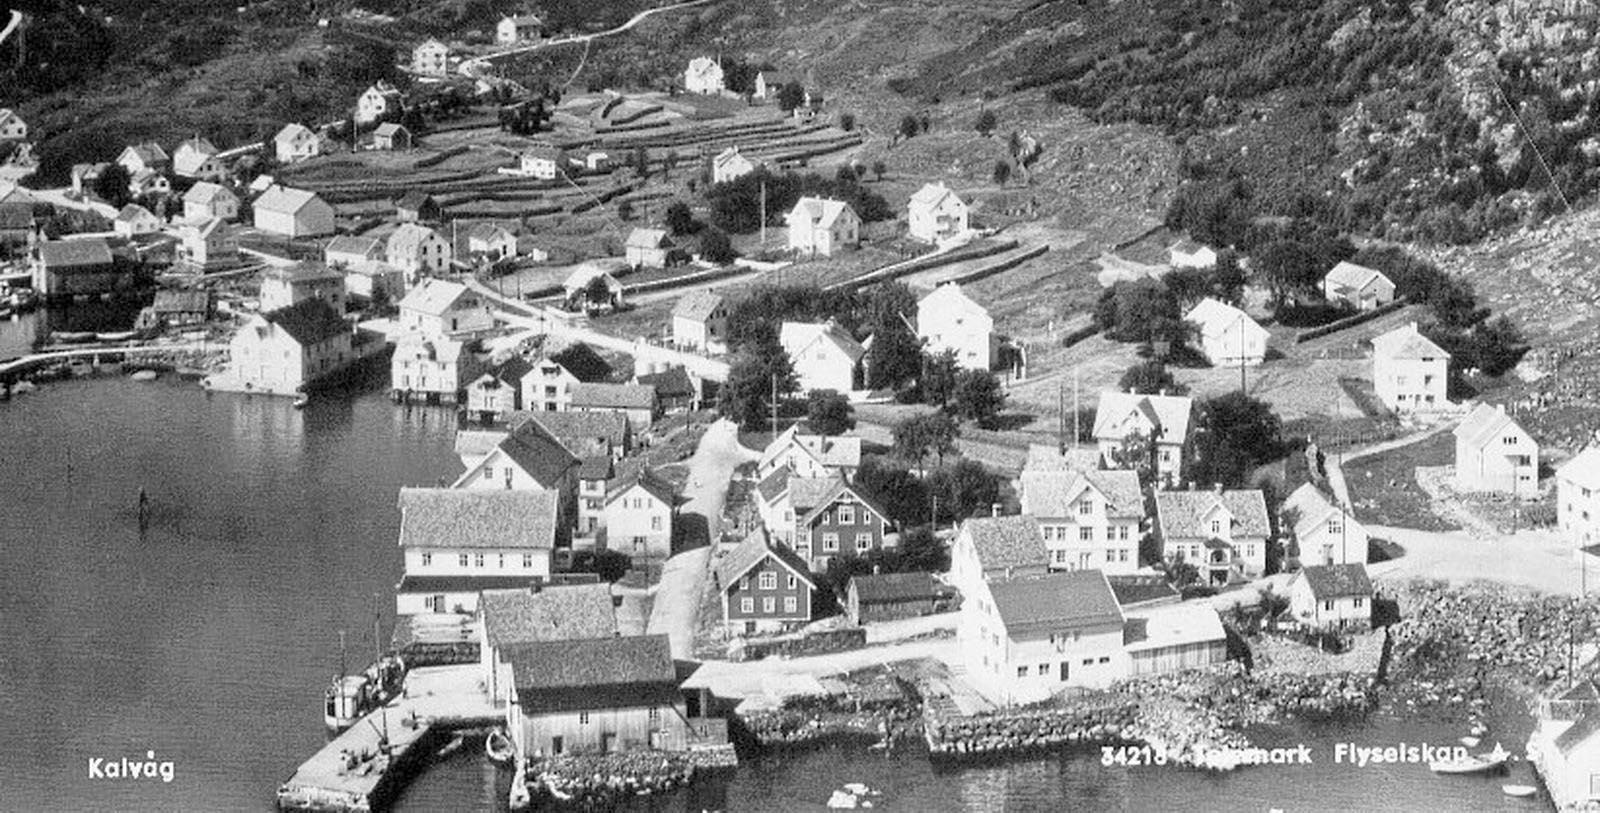 Historic Aerial View of Hotel Knutholmen Hotell, 1860, Member of Historic Hotels Worldwide, in Kalvag, Norway, Discover